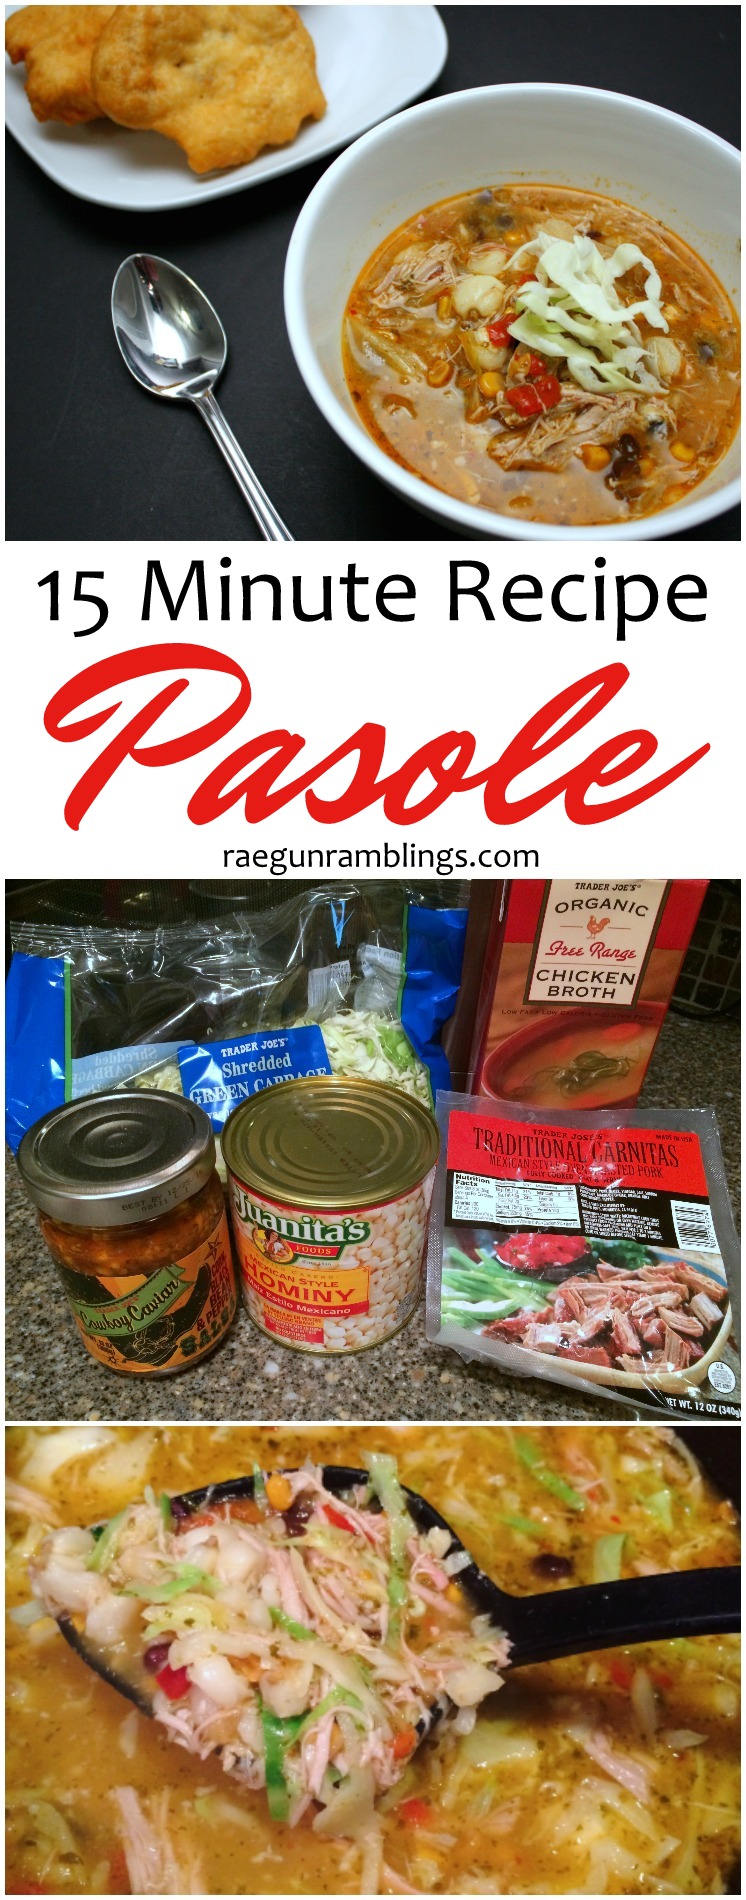 A new family favorite. Love this 15 minute pasole recipe. So good and easy. Perfect weeknight meal.